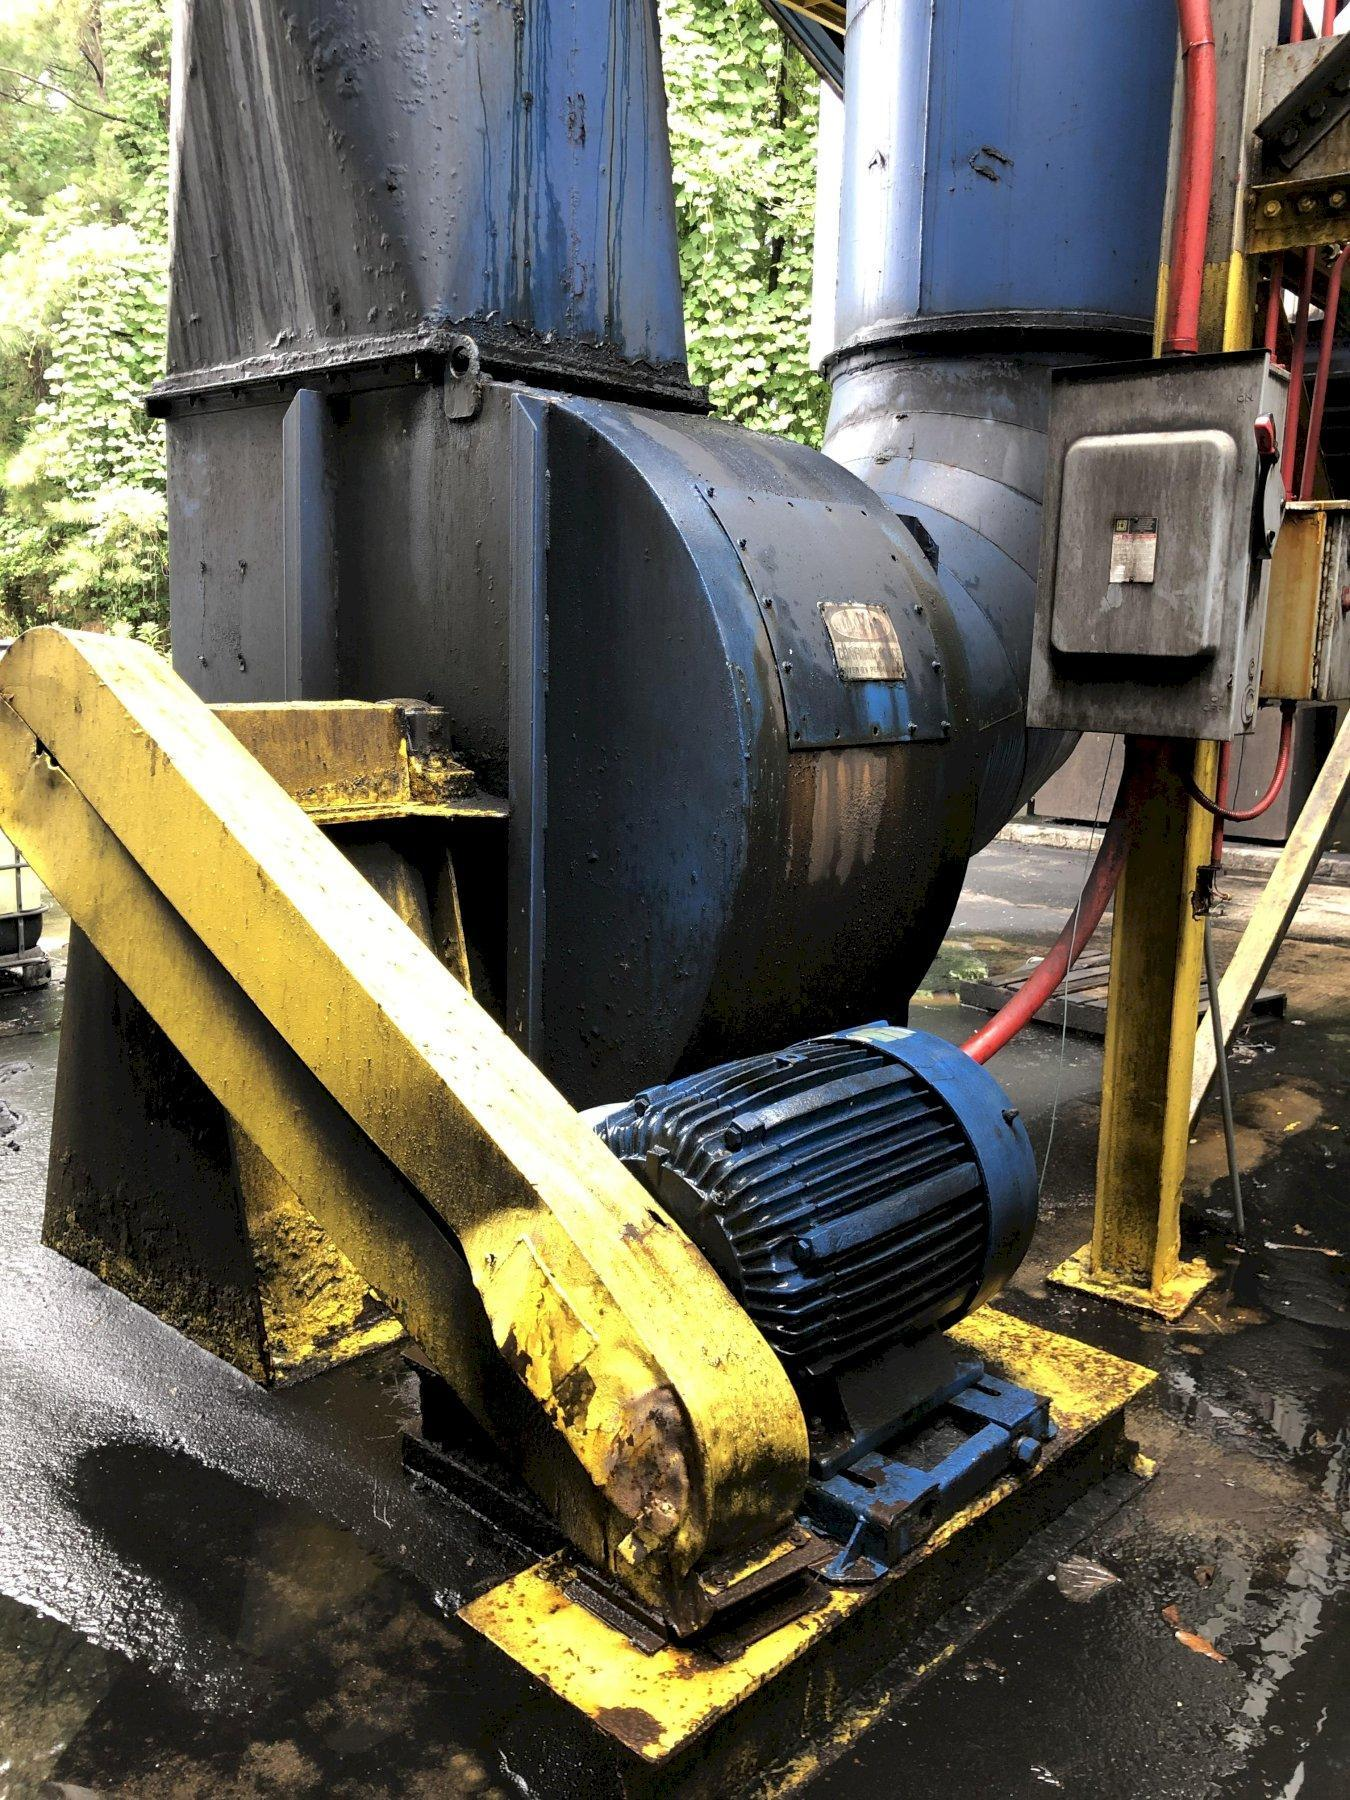 CARBORUNDUM MODEL 54582-1-465 100 HP PULSE BAG DUST COLLECTOR S/N PCF549-9001 WITH 2- ROTARY AIR LOCKS, RATED AT 36,000 CFM